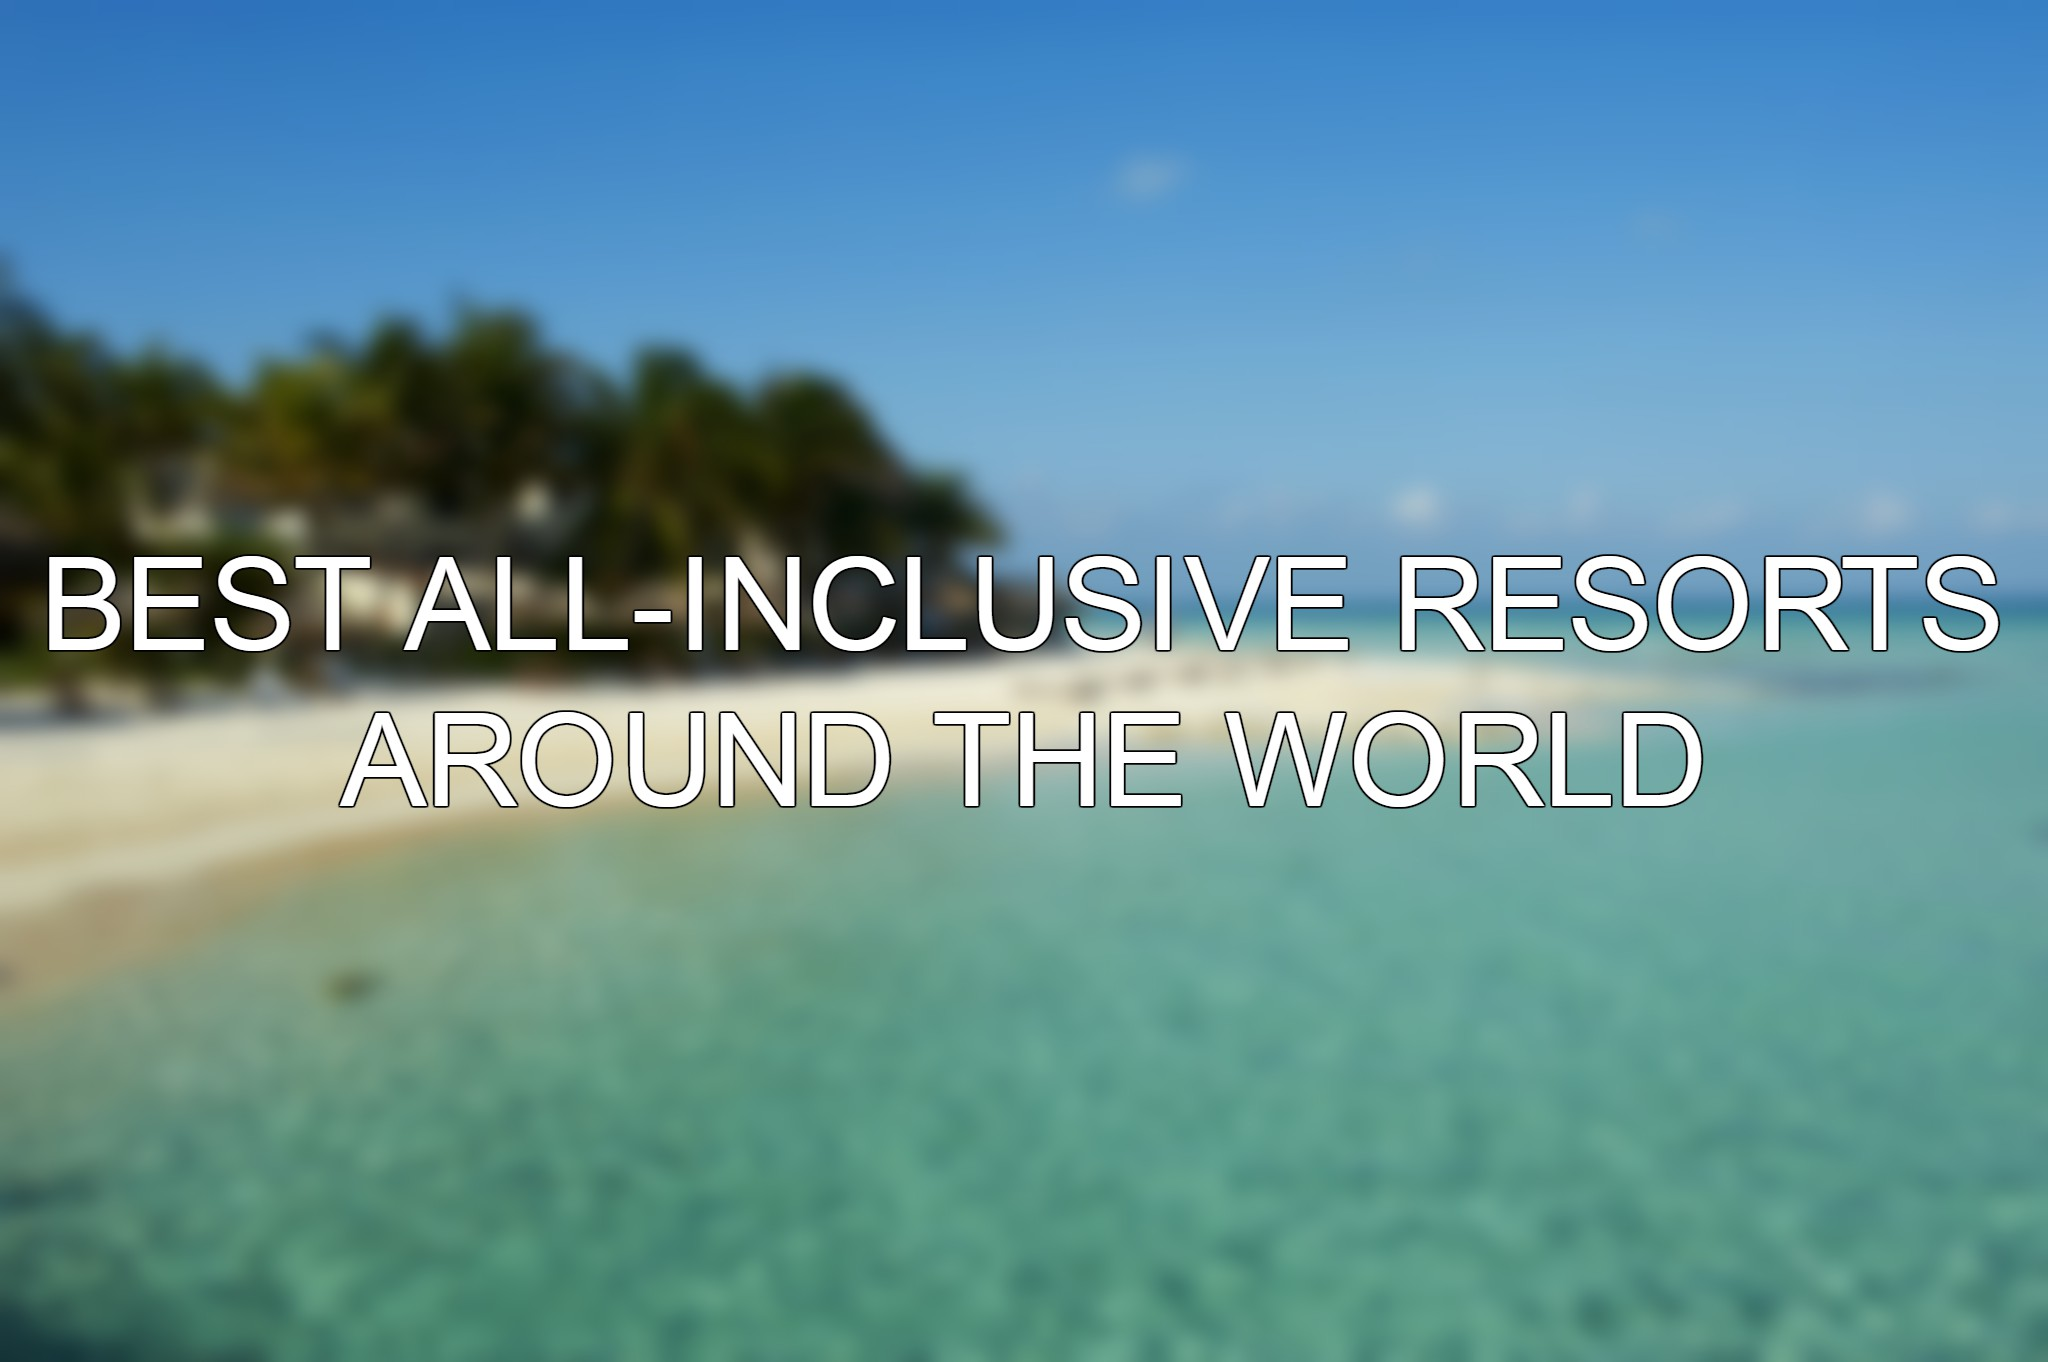 Tripadvisor Names Its Top Picks For All Inclusive Resorts Around The